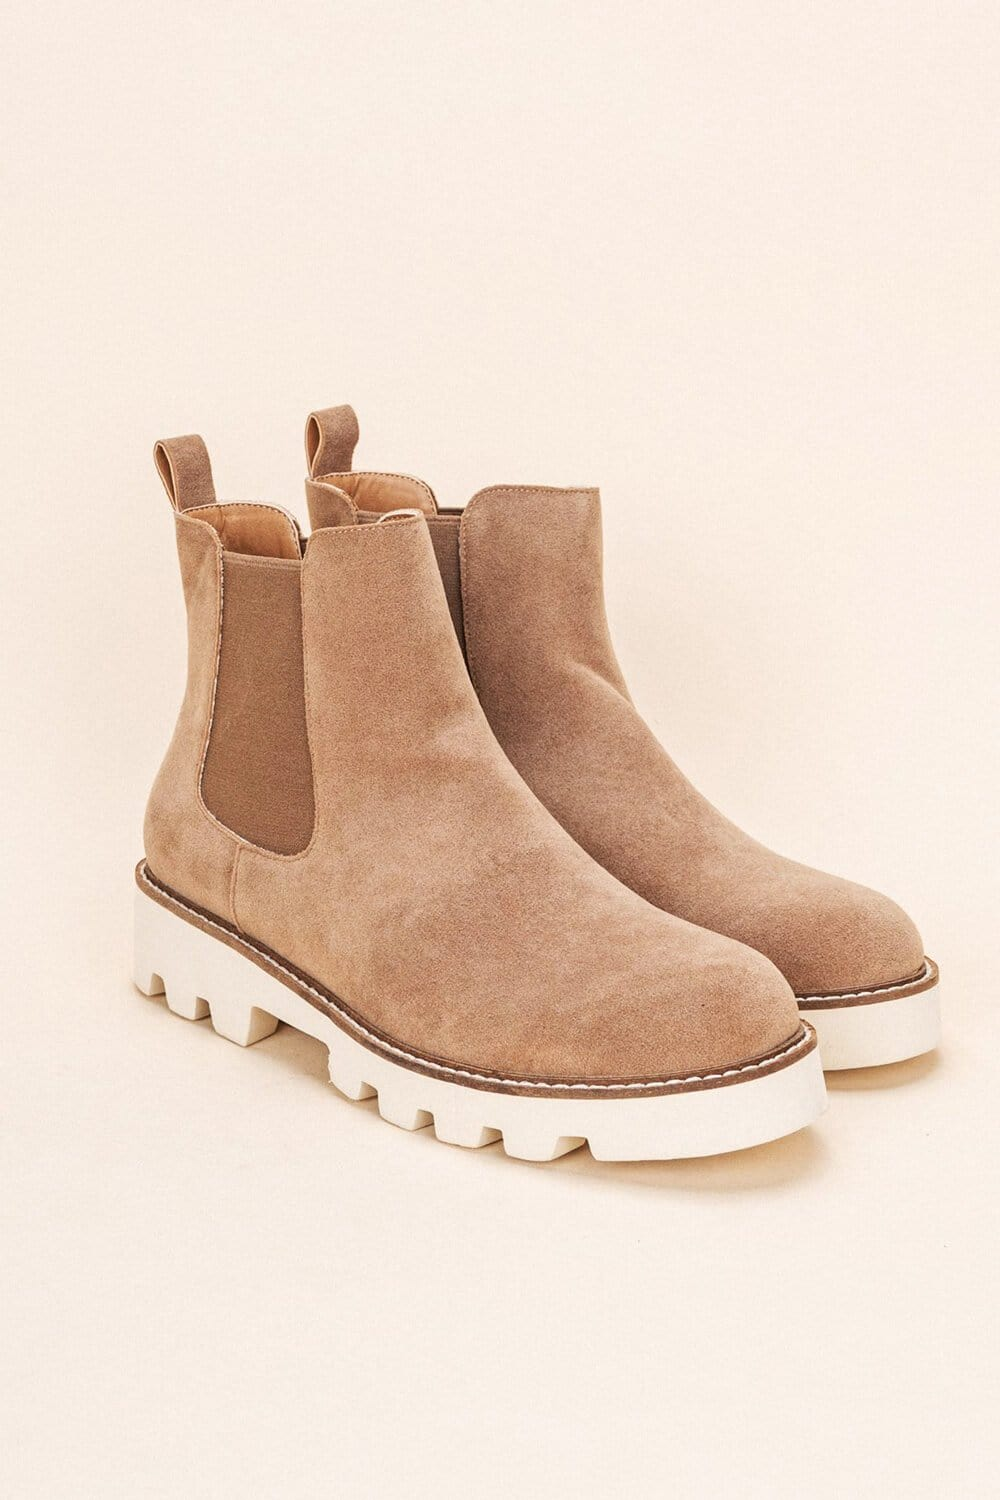 Jessie Chunky Sole Chelsea Boot latte double side MILK MONEY